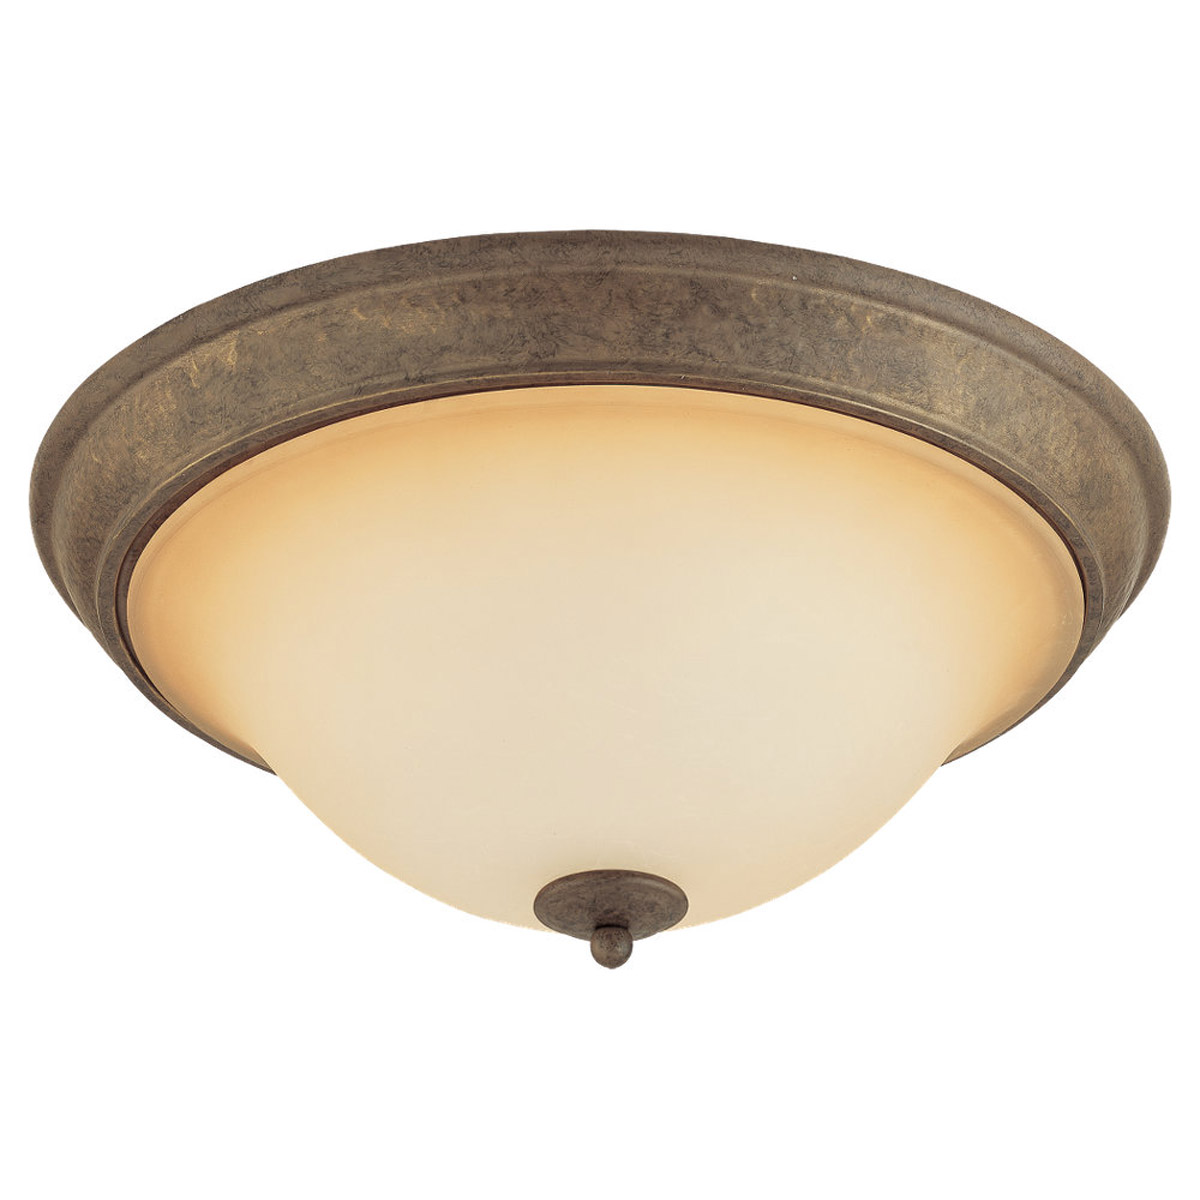 Sea Gull Lighting Brandywine 3 Light Flush Mount in Antique Bronze 75430-71